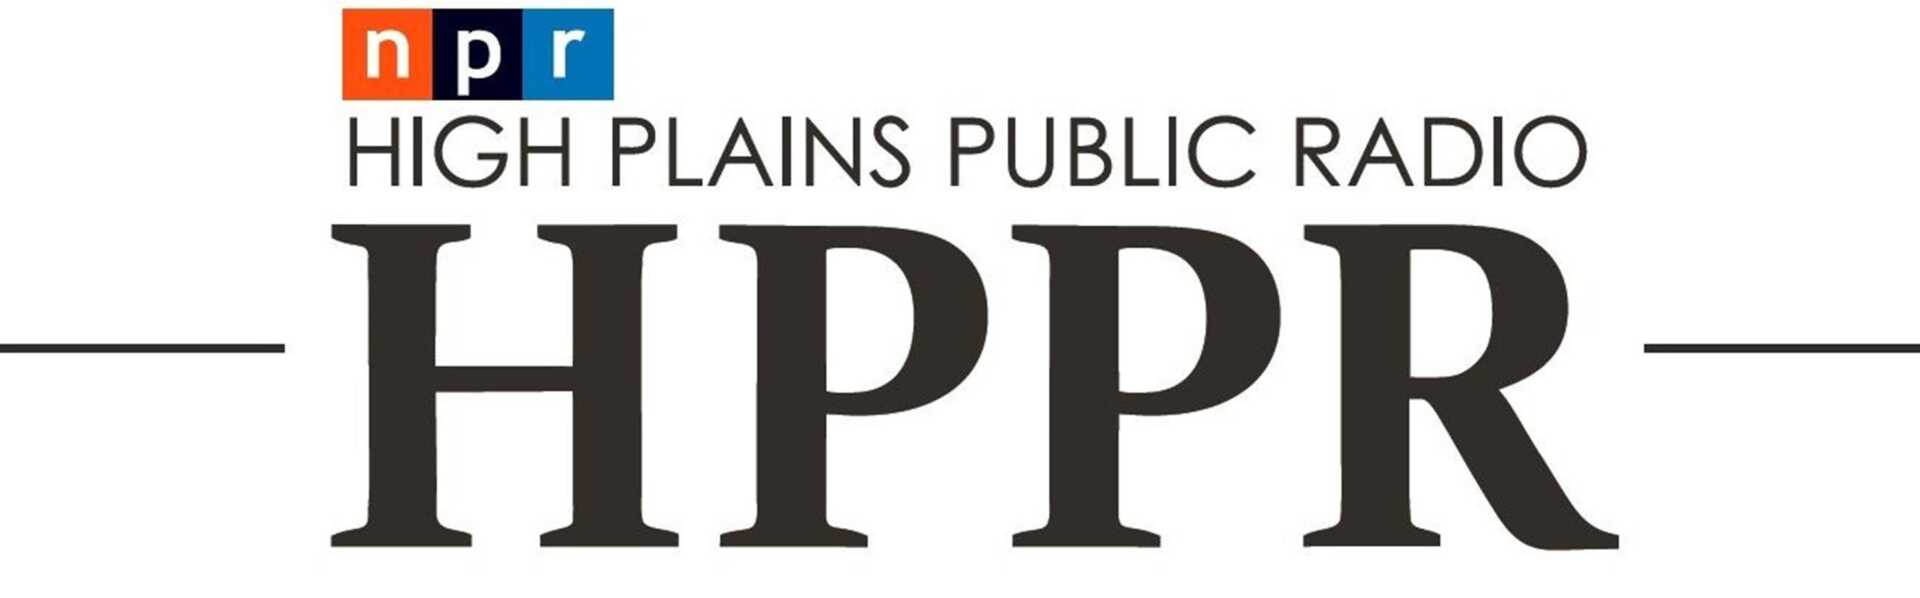 High Plains Public Radio-Logo1-2